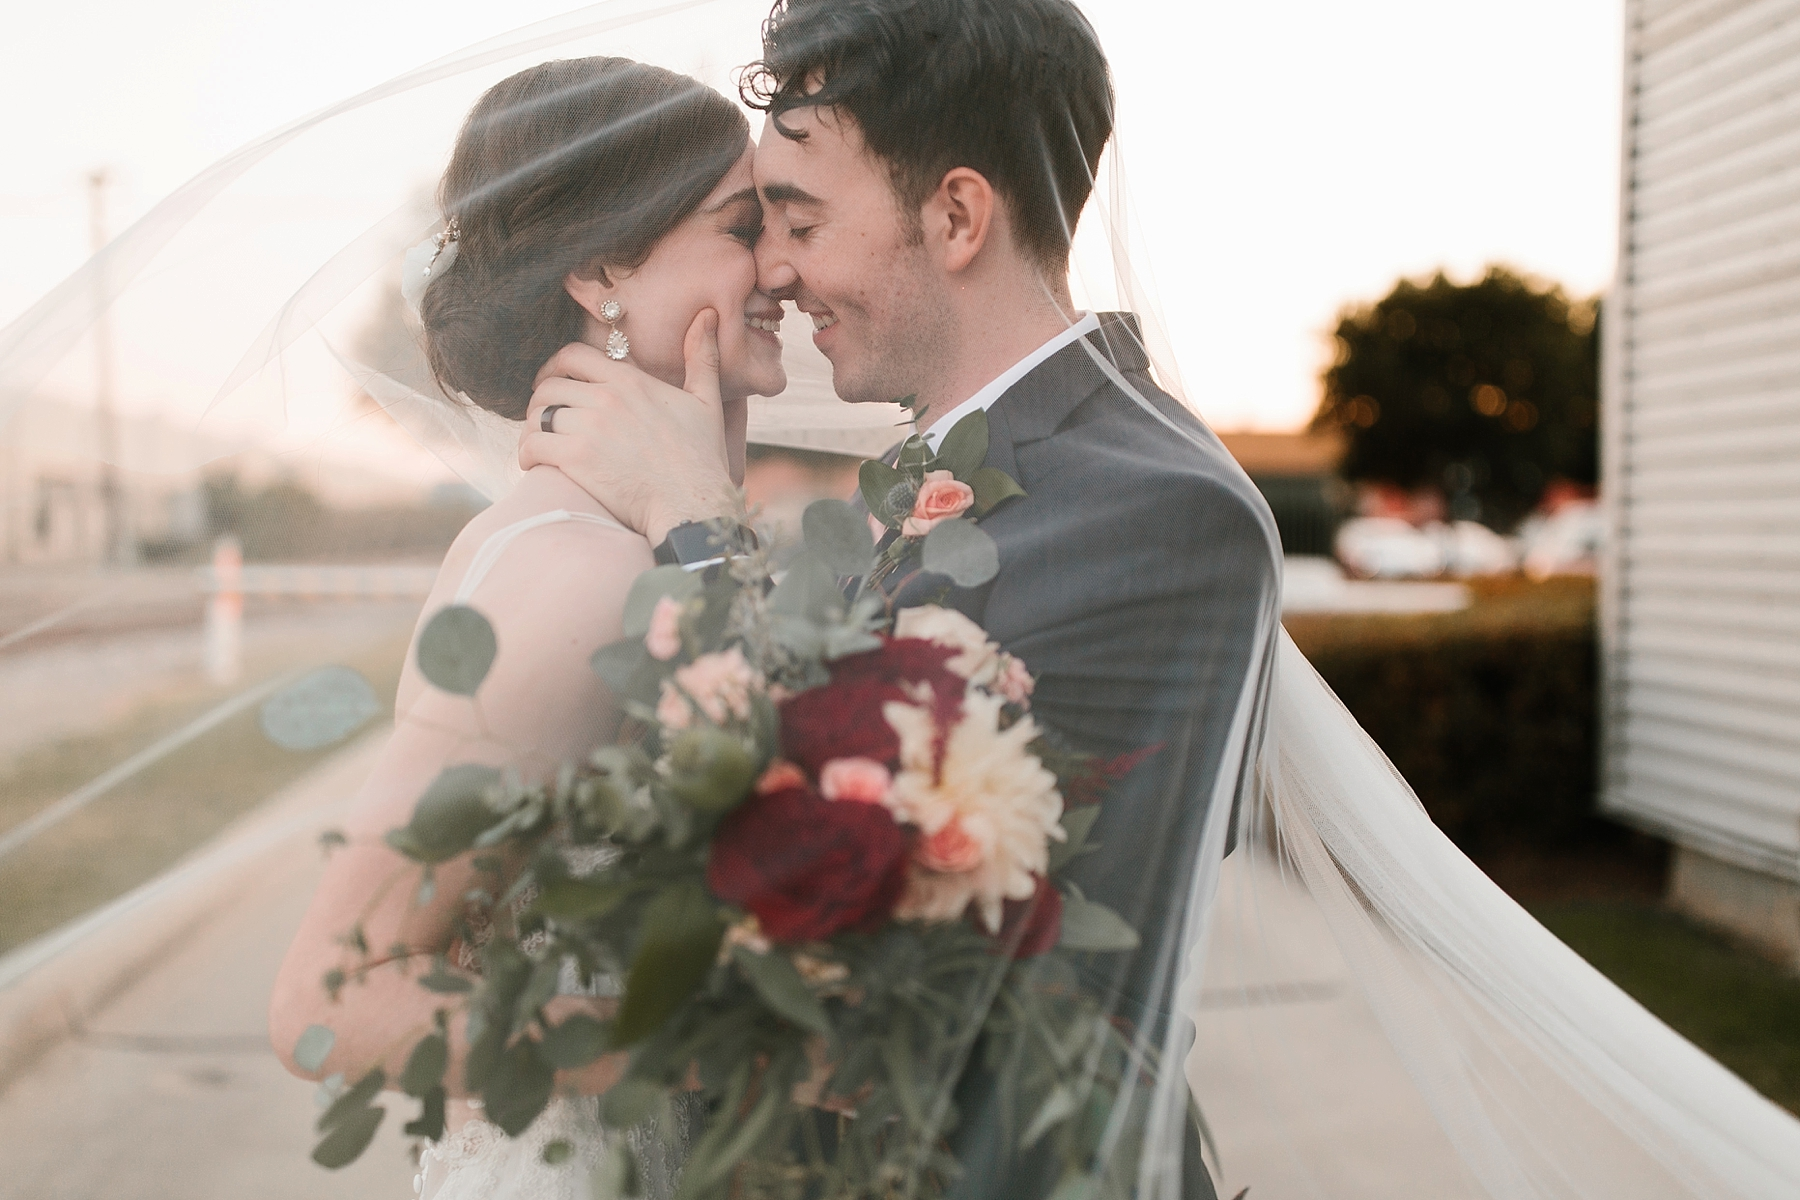 Emily + Caleb _ an elegant, intentional, industrial style wedding with navy + gold accents at 6500 in Dallas, TX by North Texas Wedding Photographer Rachel Meagan Photography _ 117